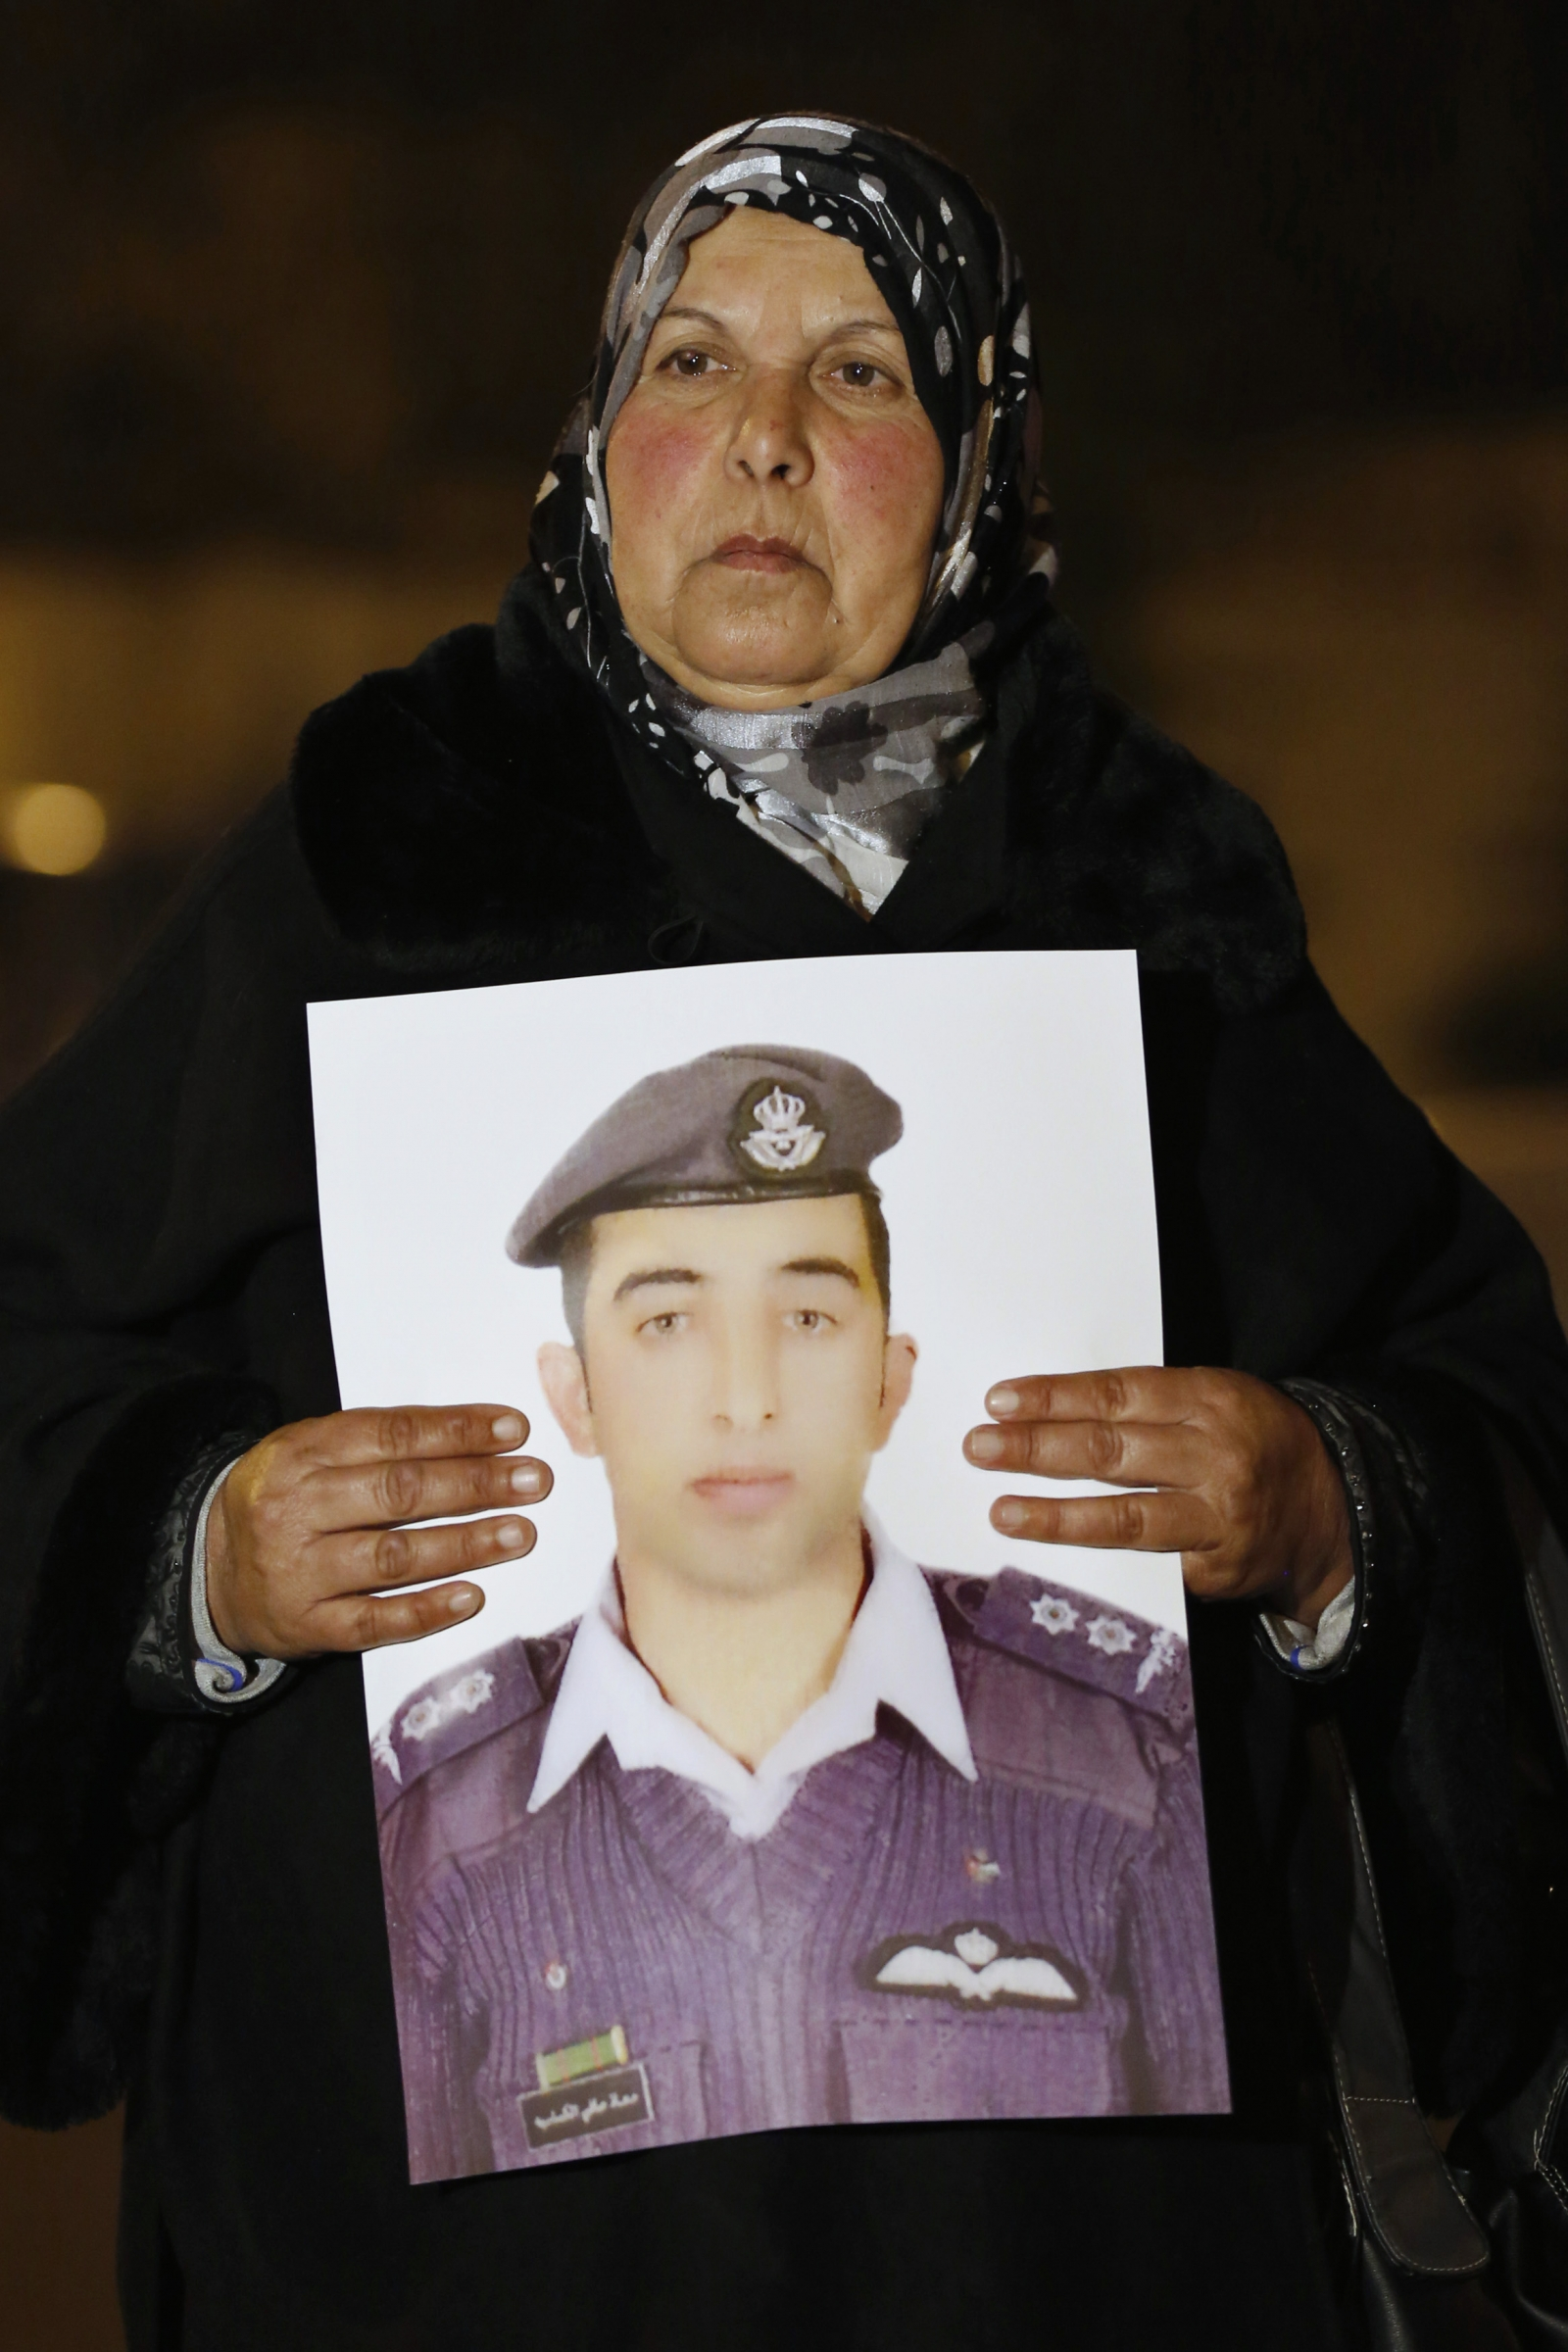 Mother of Islamic State captive Jordanian pilot Muath al-Kasaesbeh holds his picture as she takes part in a demonstration demanding that the Jordanian government negotiate with Islamic state